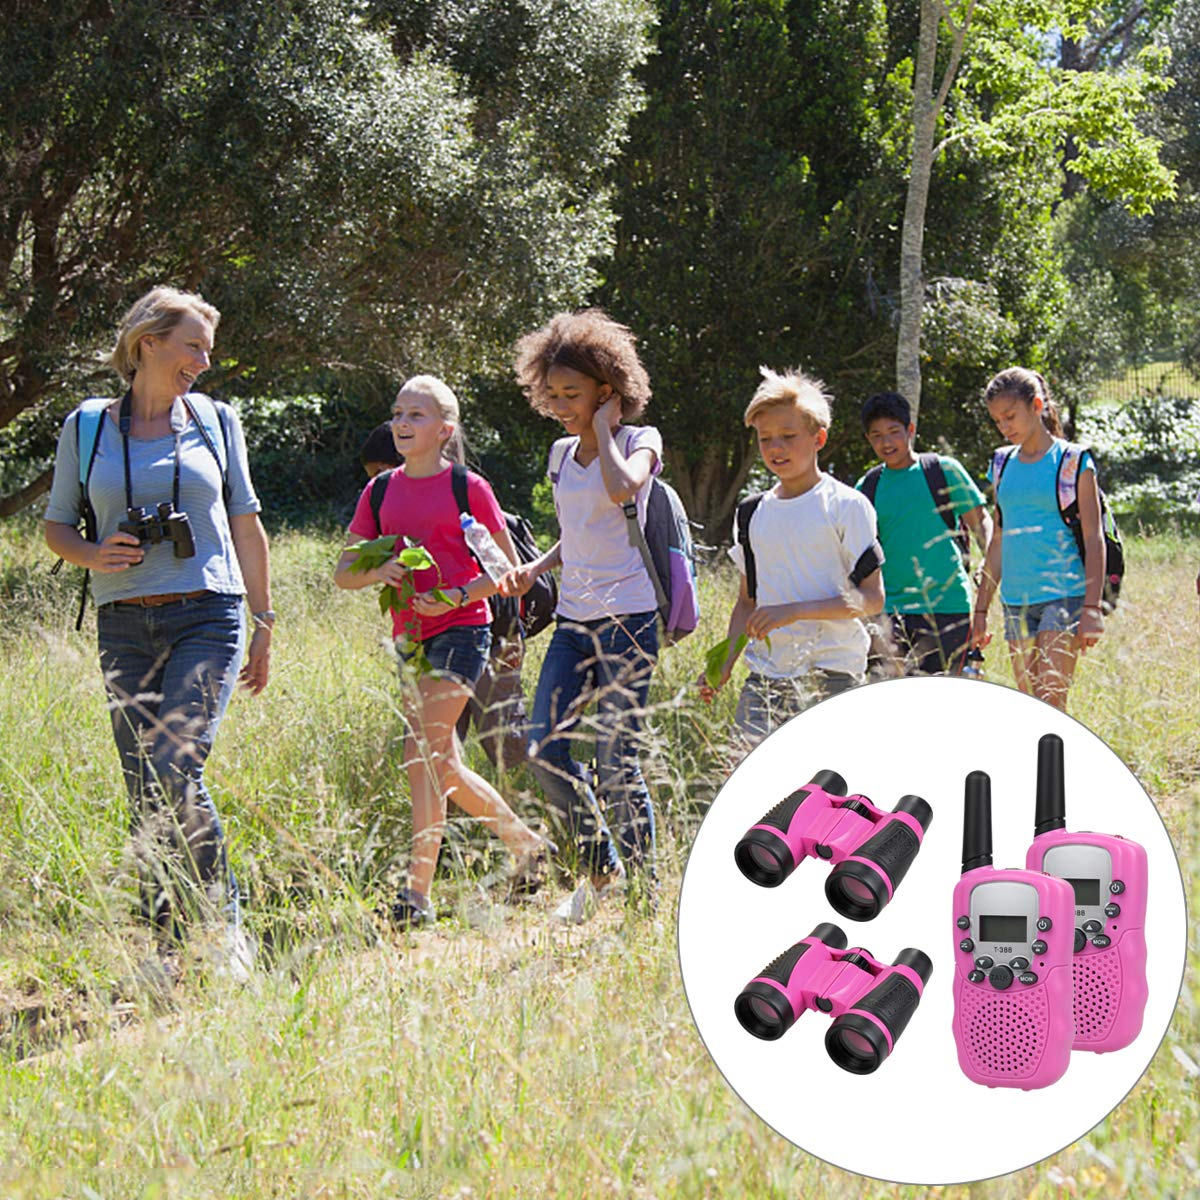 Anpro walkie talkies and Telescope Sets for Kids, 22 Channel 2 Way Radio 3 Mile Long Range Handheld Kids Walkie Talkies, Best Gifts & Top Toys for Boy & Girls for Outdoor Adventure Game(Pink) by Anpro (Image #6)